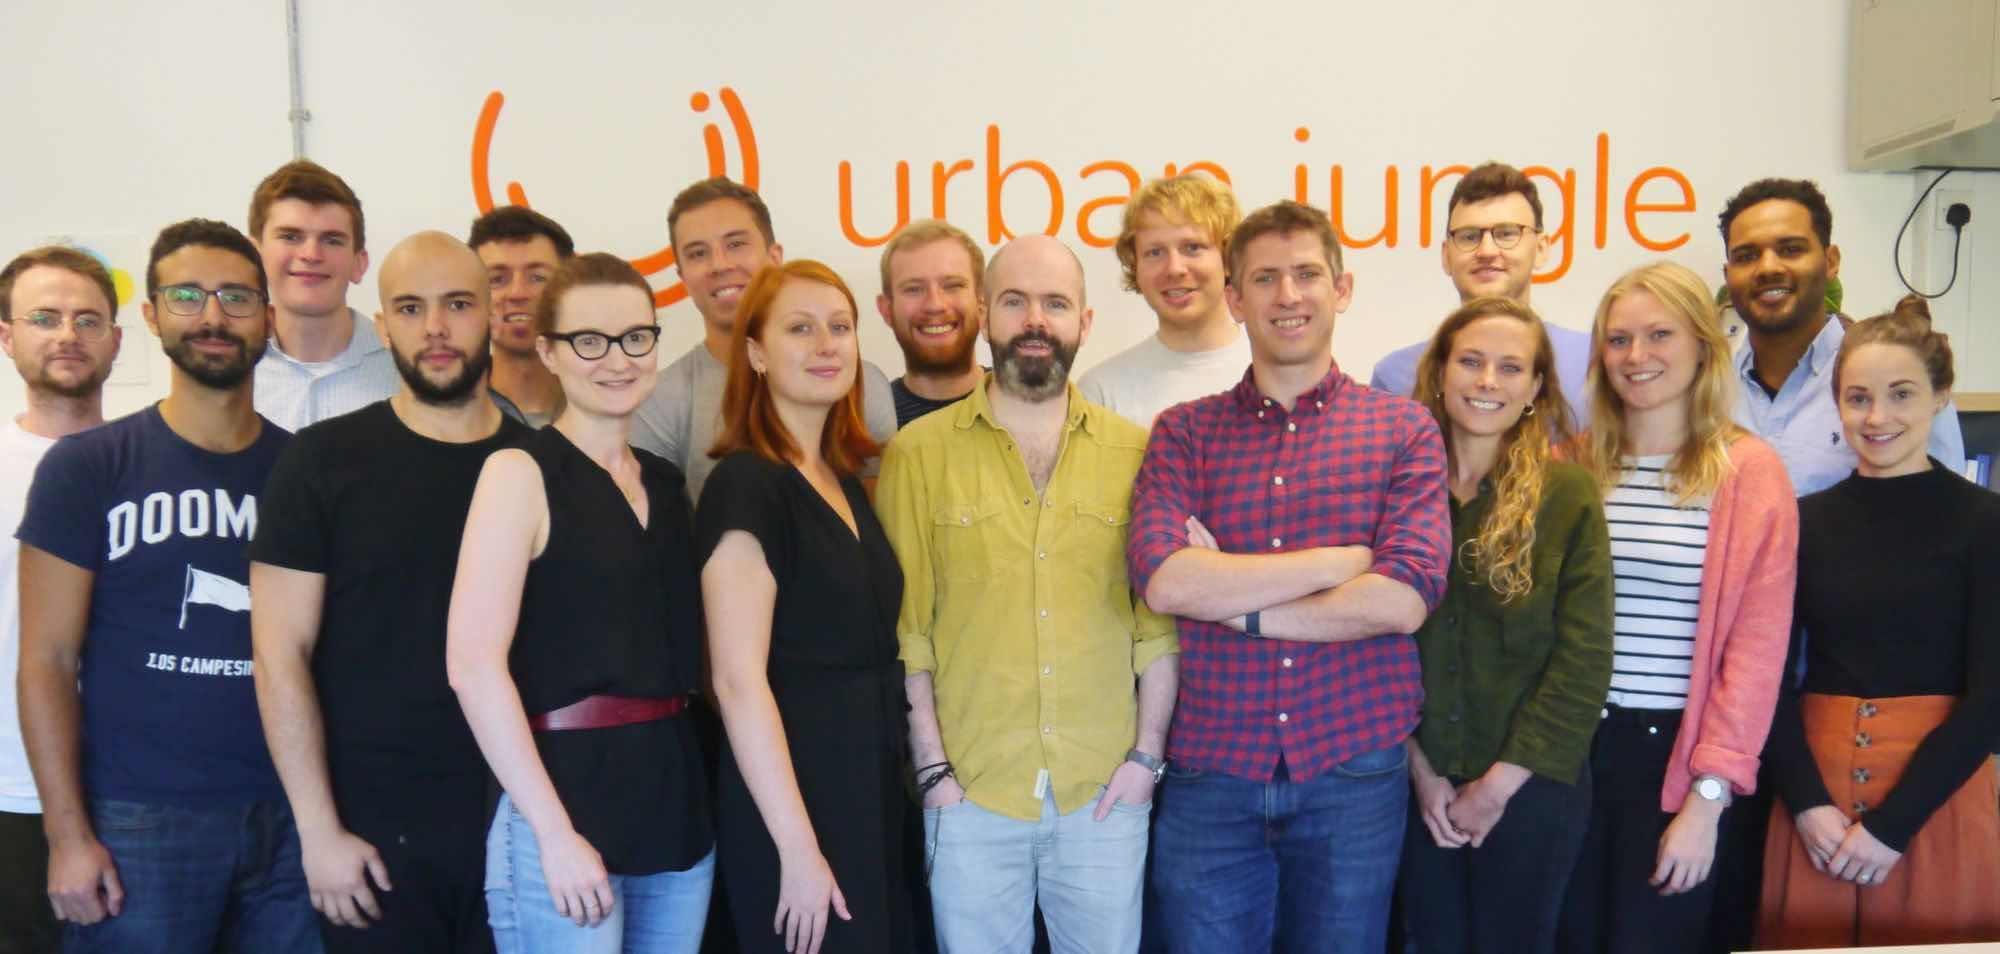 Urban Jungle secures £1.6 million Series A Follow On Investment